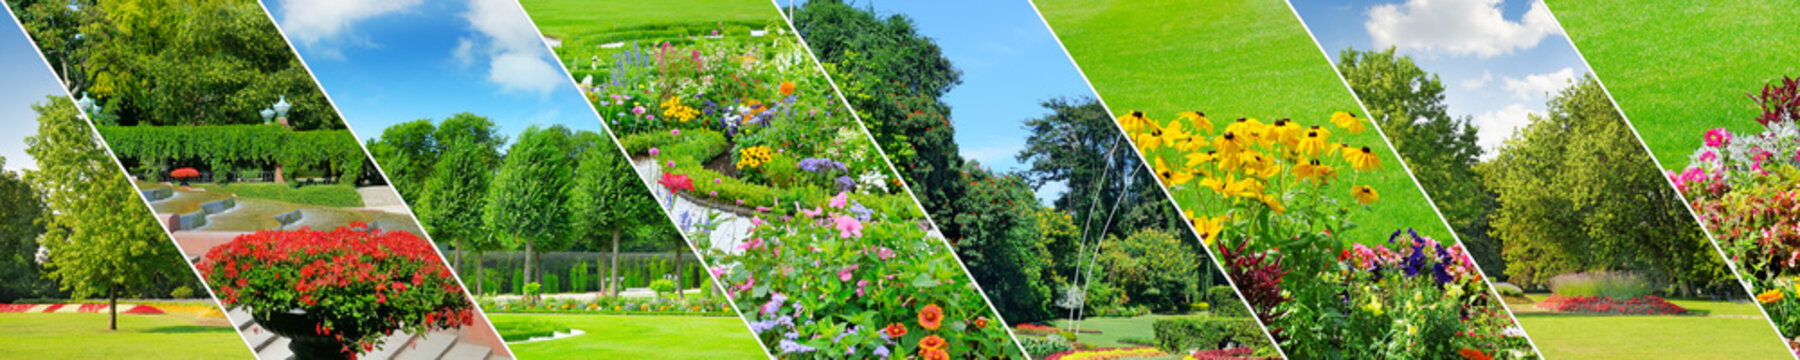 Spring gardens with beautiful flowers and lawns. Panoramic collage. Wide photo.